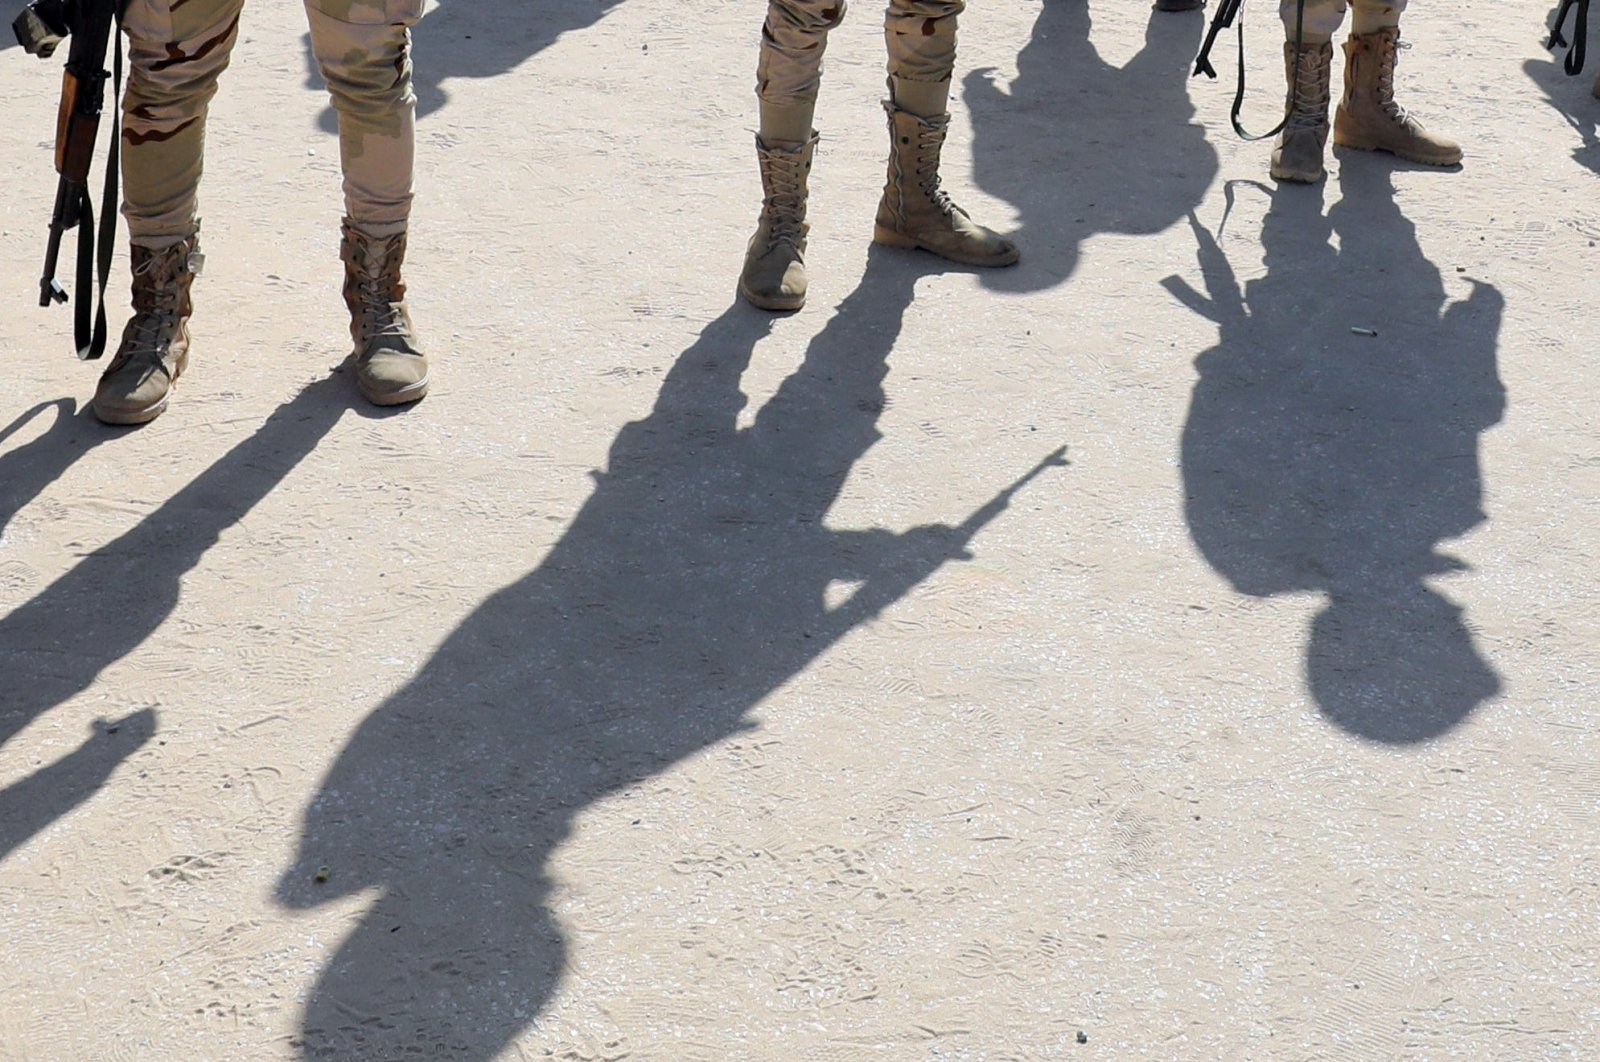 Military forces are seen in North Sinai, Egypt, Dec. 1, 2017. (Reuters File Photo)